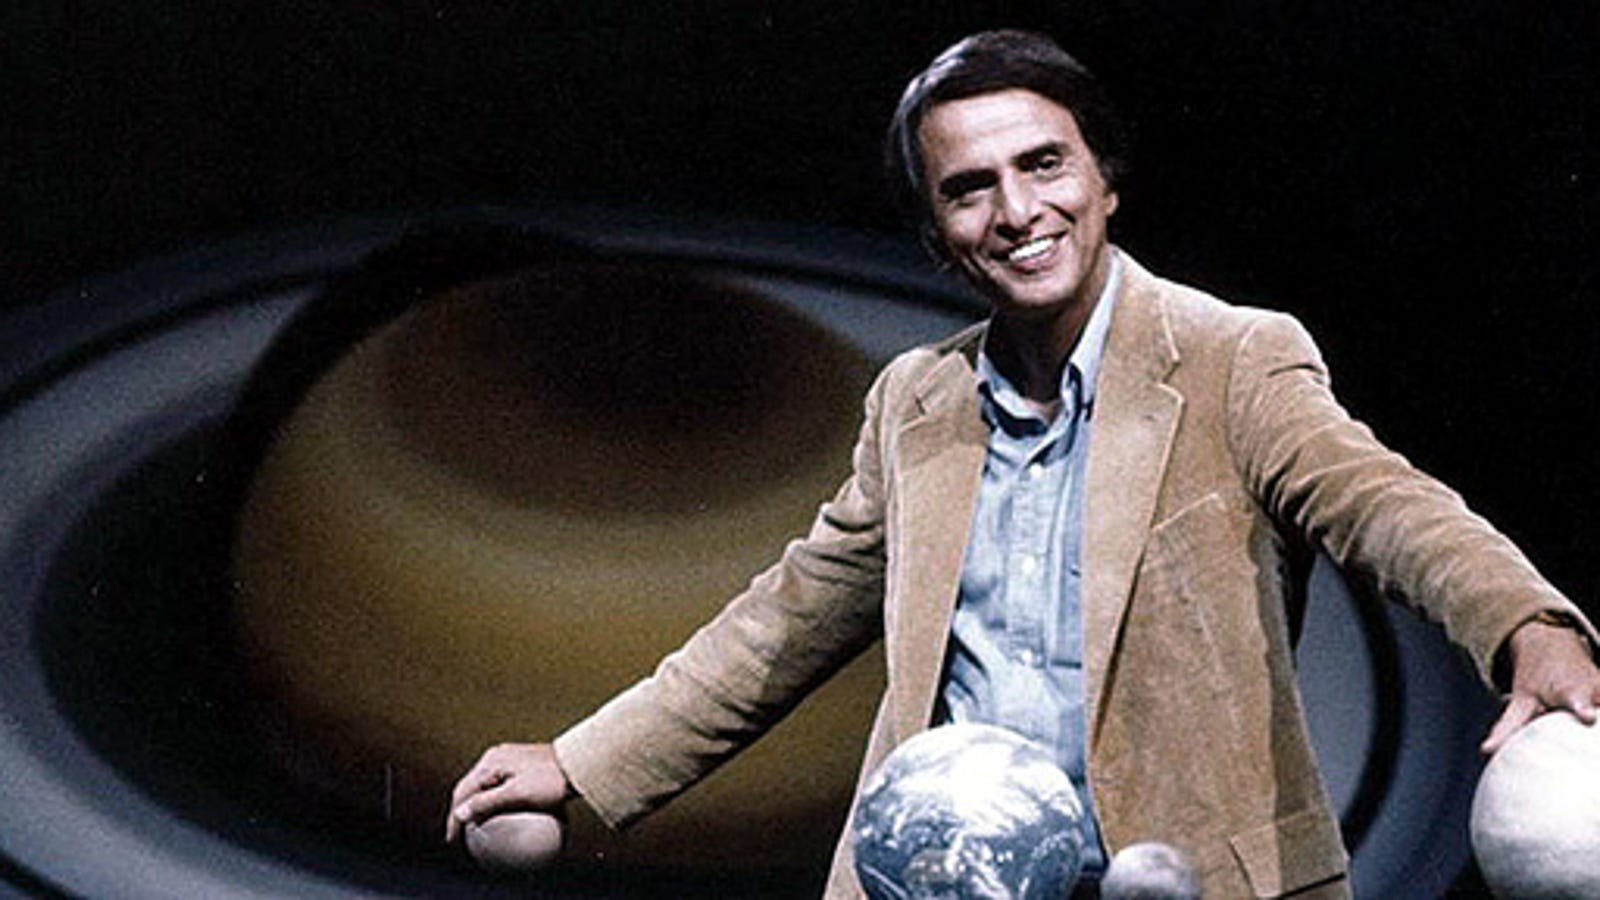 Every time Carl Sagan said million, billion, trillion, and